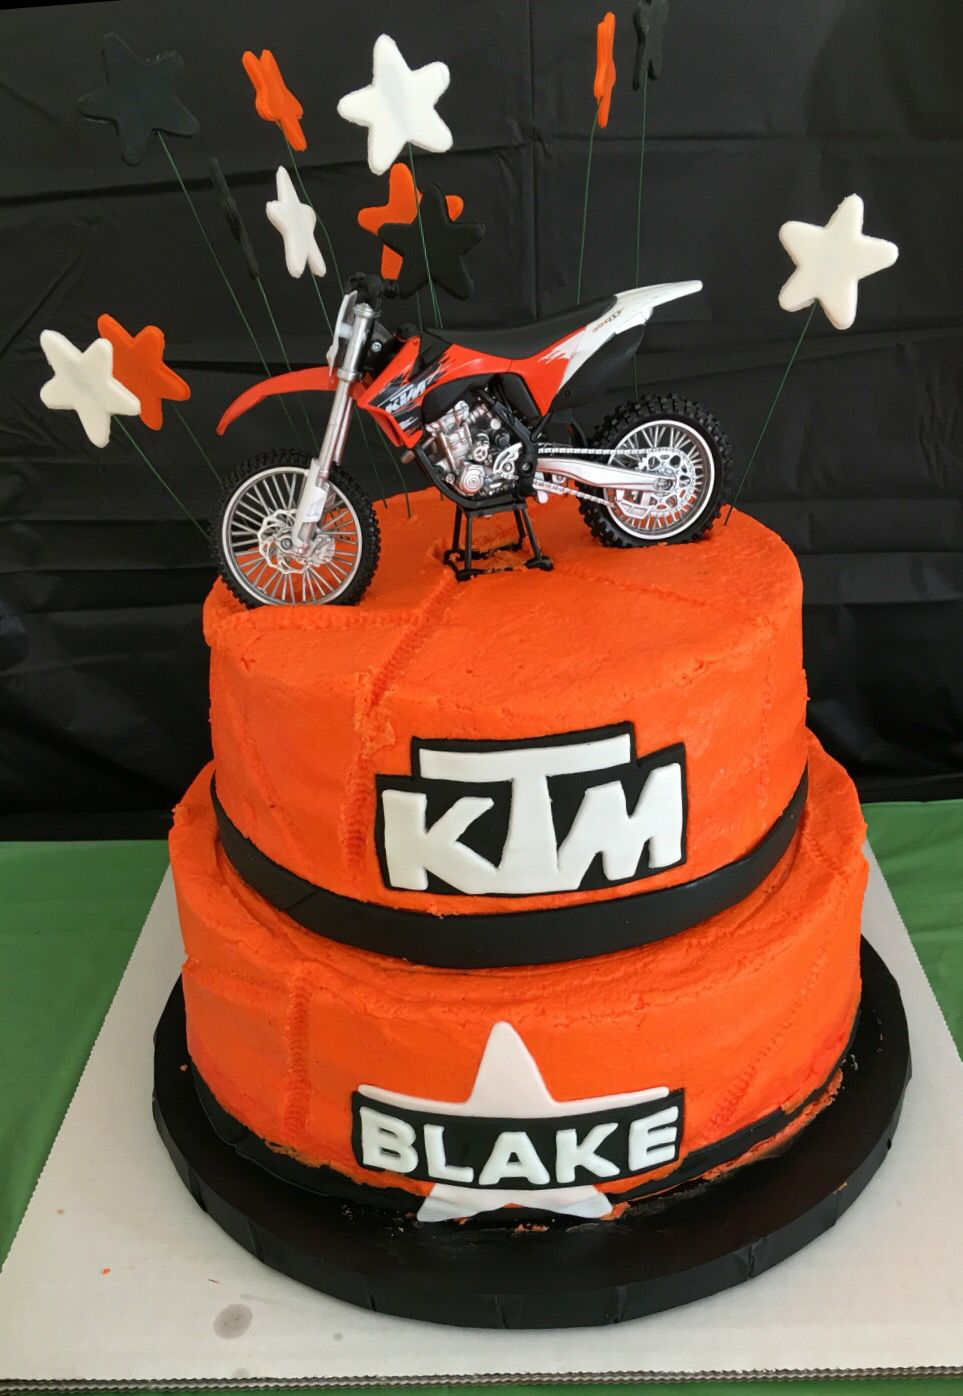 Ktm Themed Motocross Cake The Young Man Had His Dad Put Tire Tracks